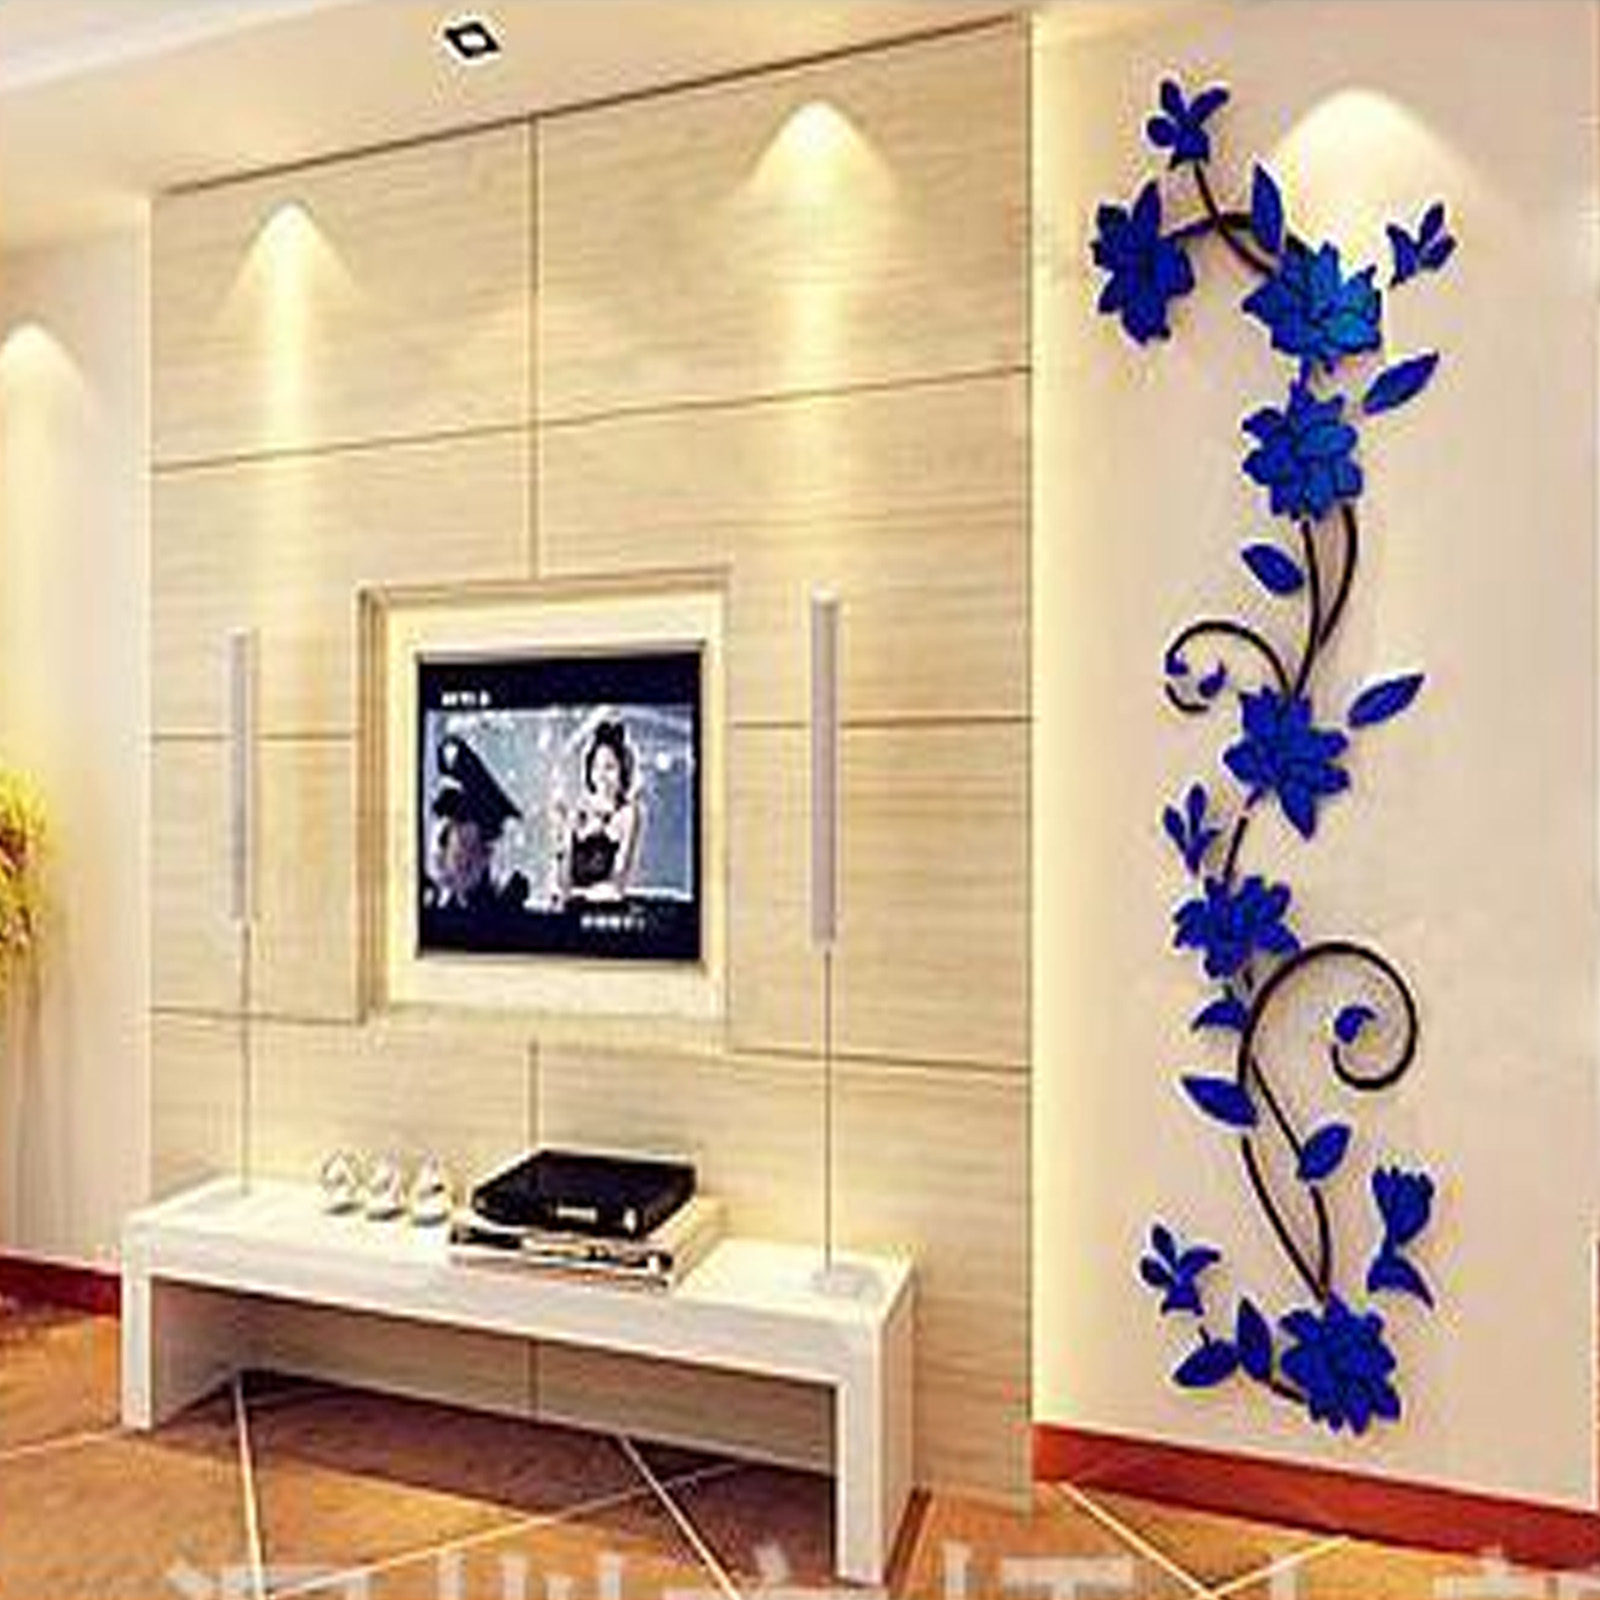 Flower Removable Vinyl Wall Sticker Diy Acrylic Decal Mural Home